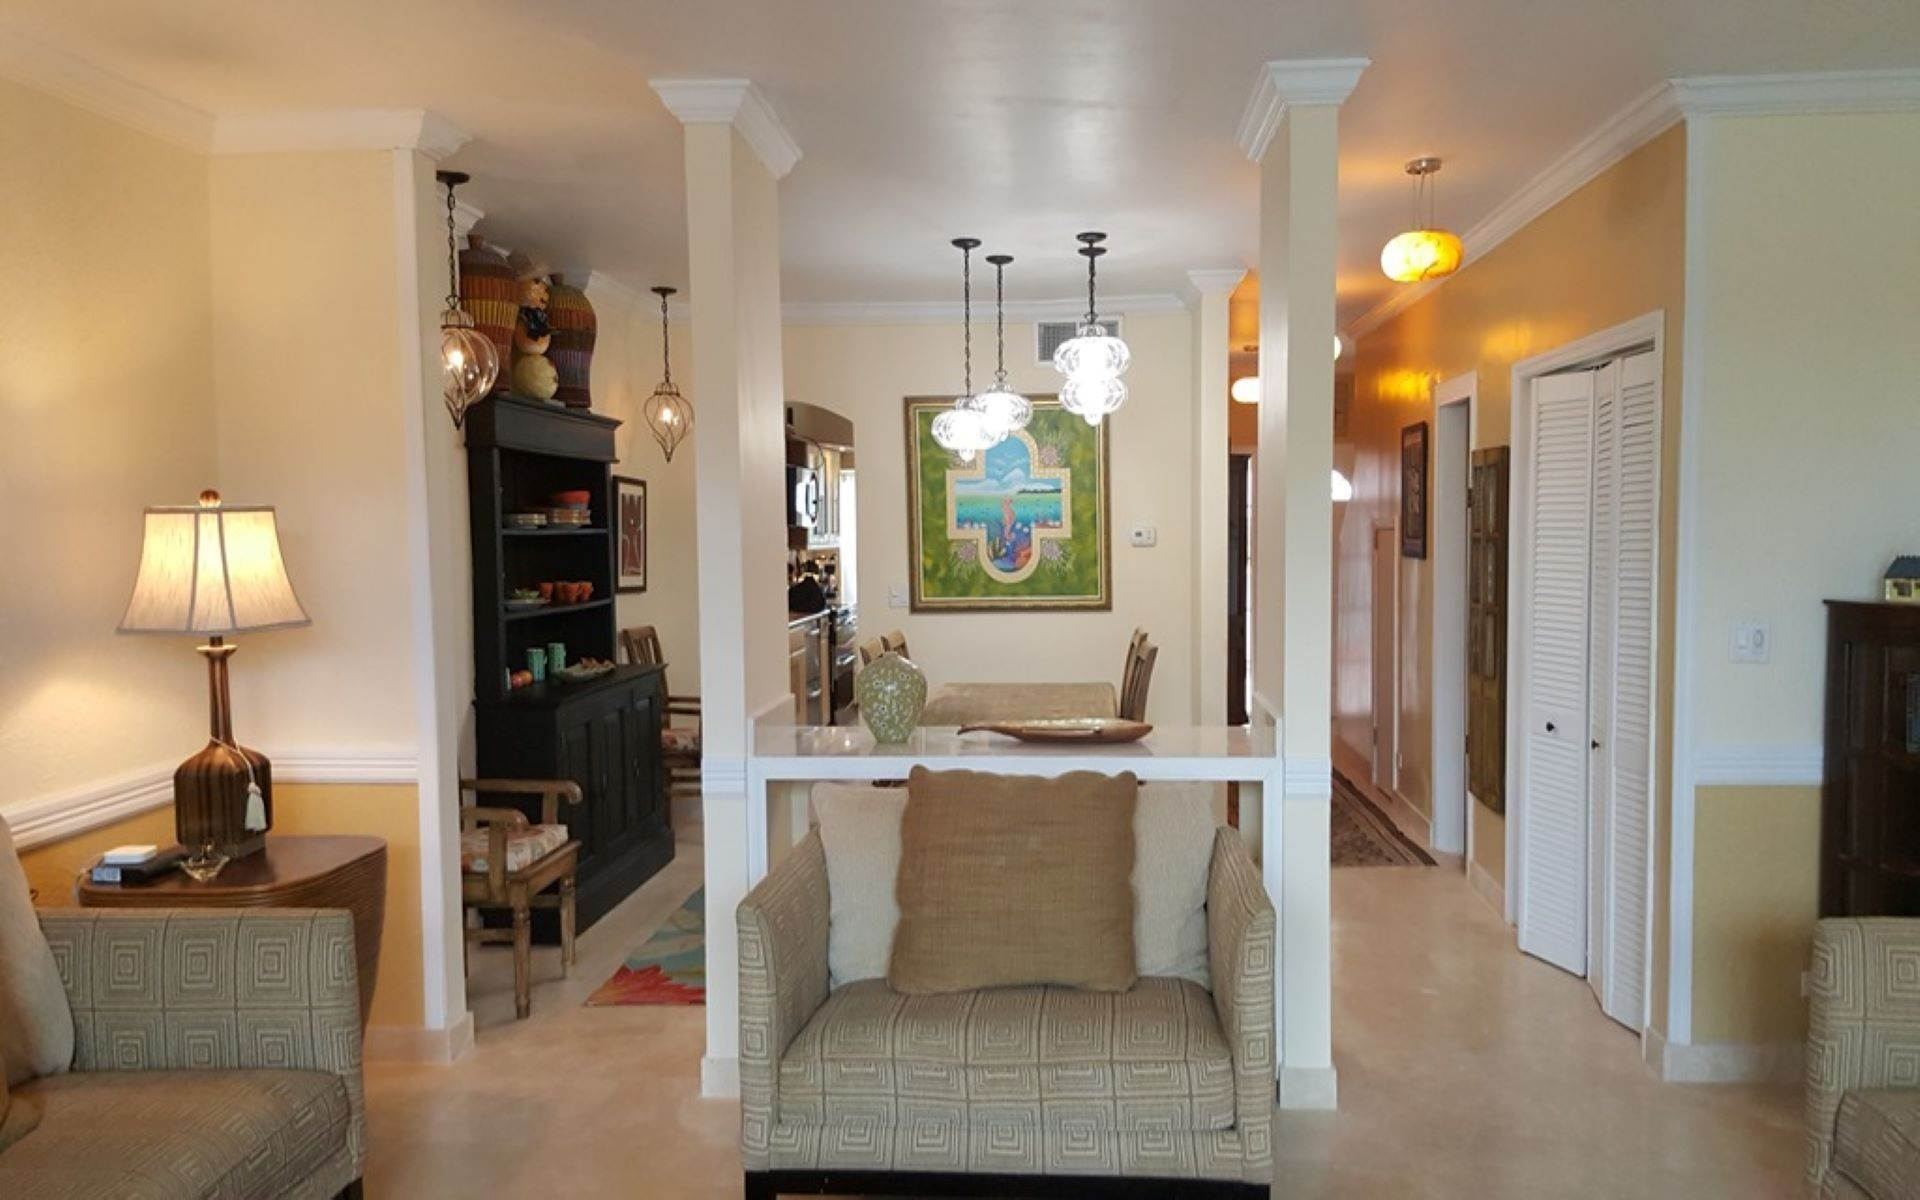 Co-op / Condo for Sale at Seapointe Condo - MLS 42217 St Andrews Beach, Yamacraw, Nassau And Paradise Island Bahamas